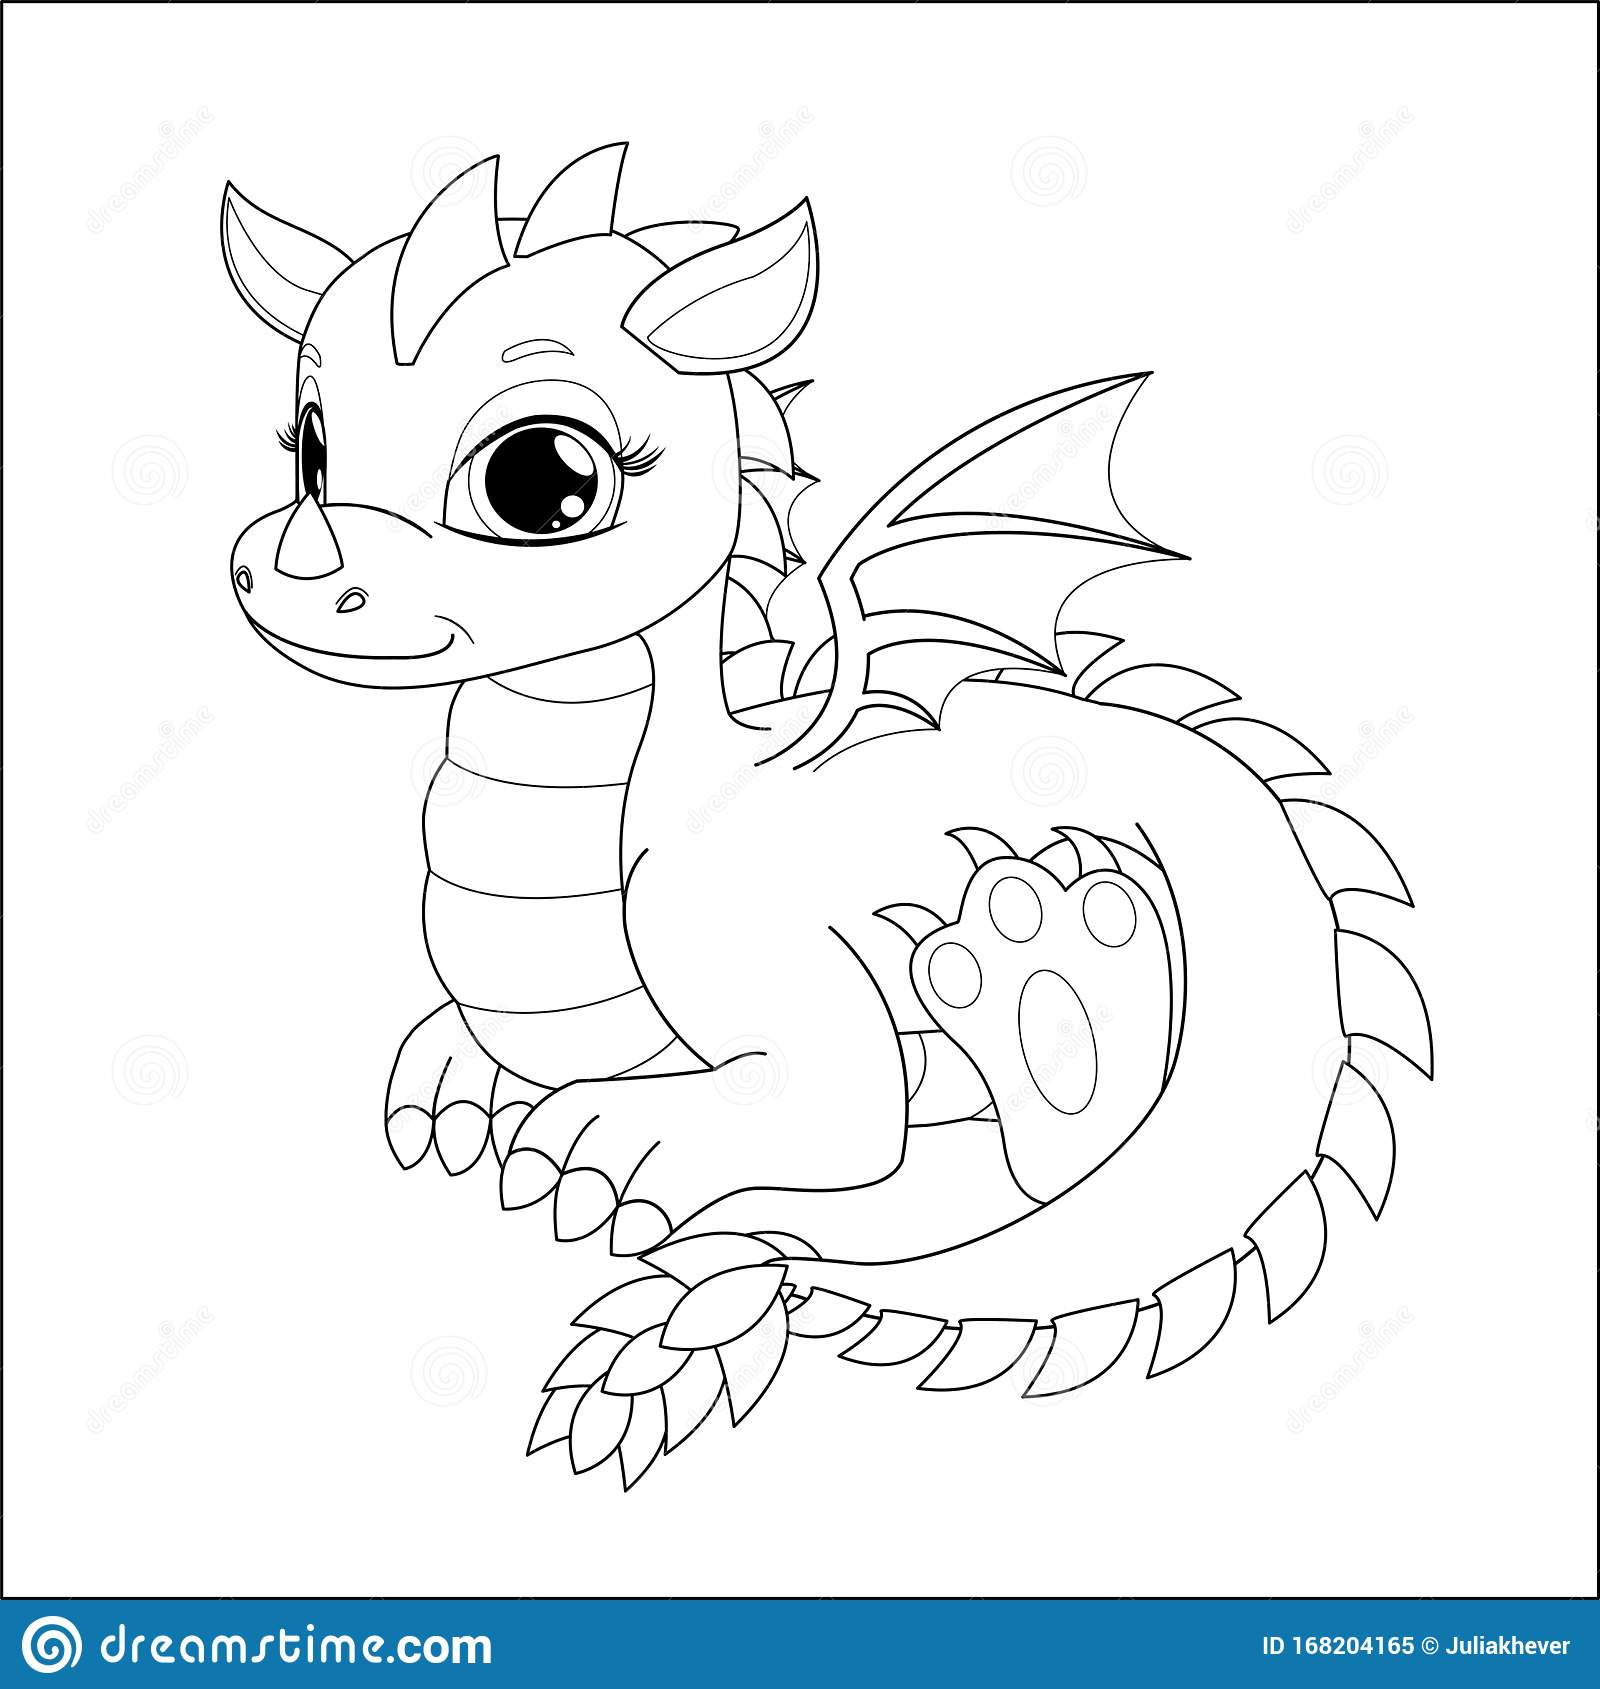 Coloring Page For Kids With Funny Cartoon Dragon Stock Vector